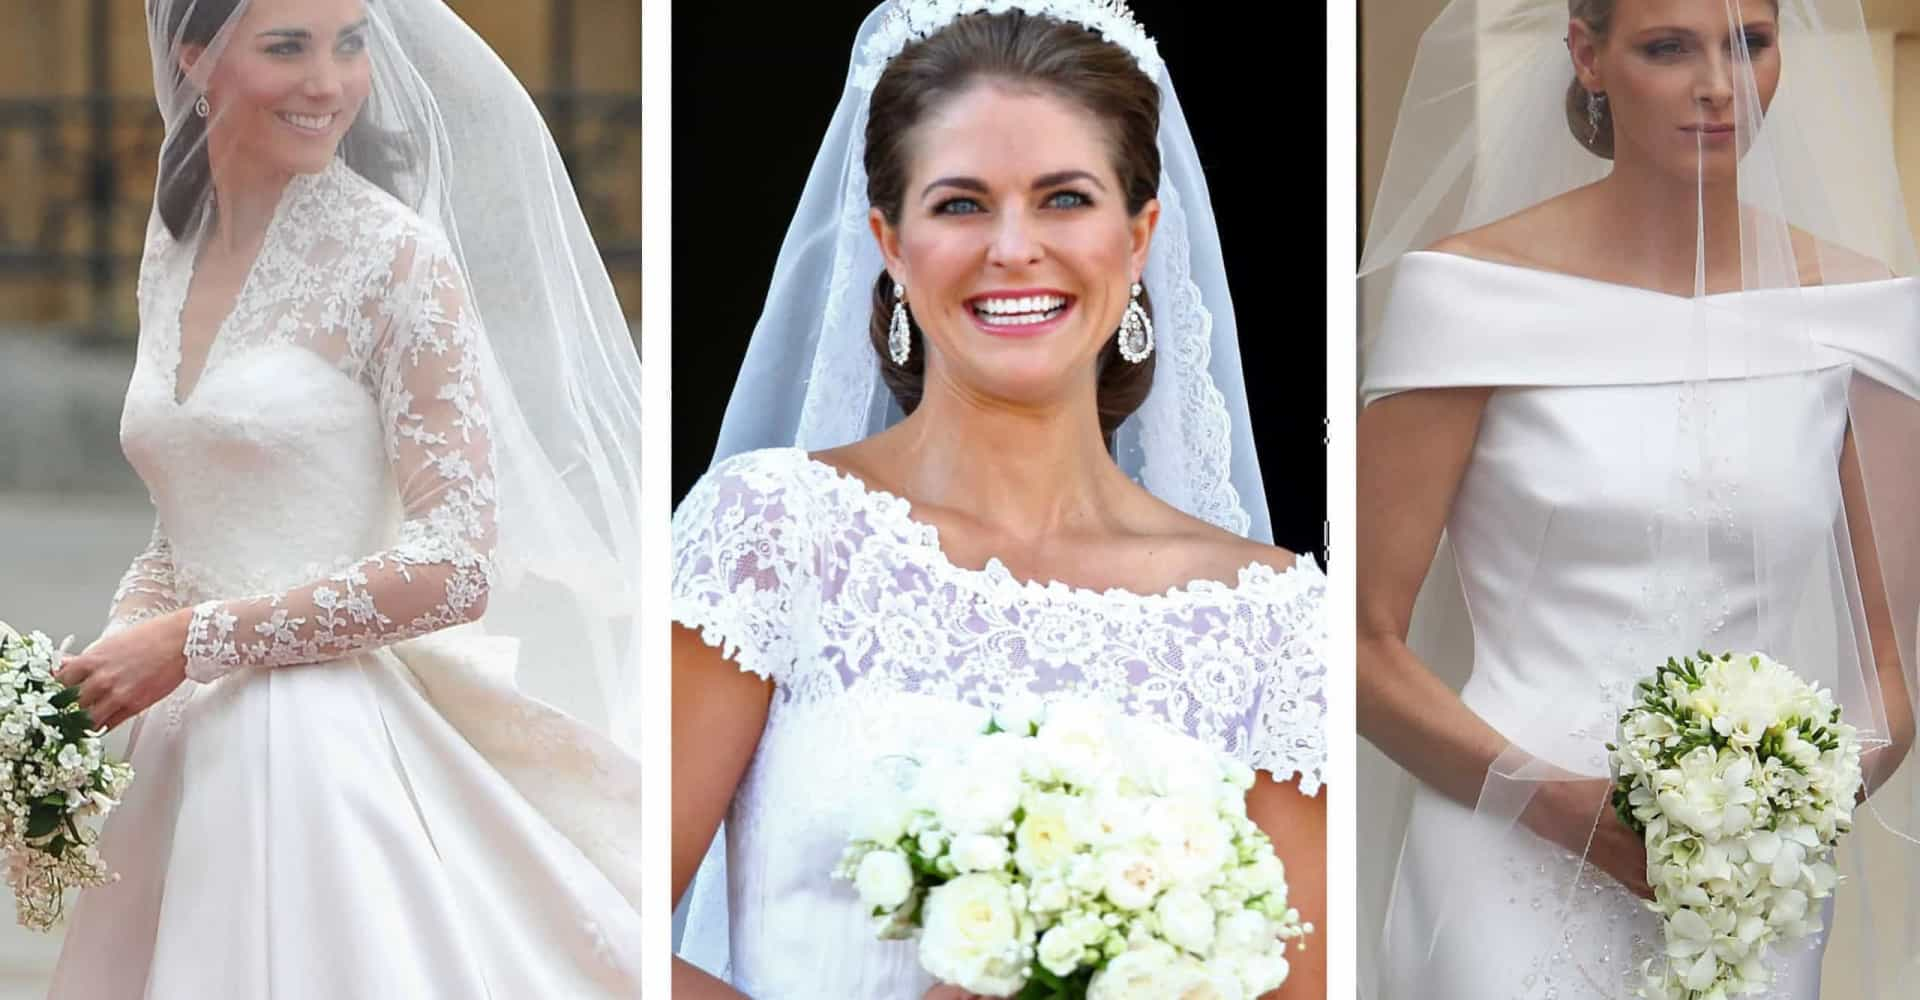 Royals: who had the most stunning wedding dress?